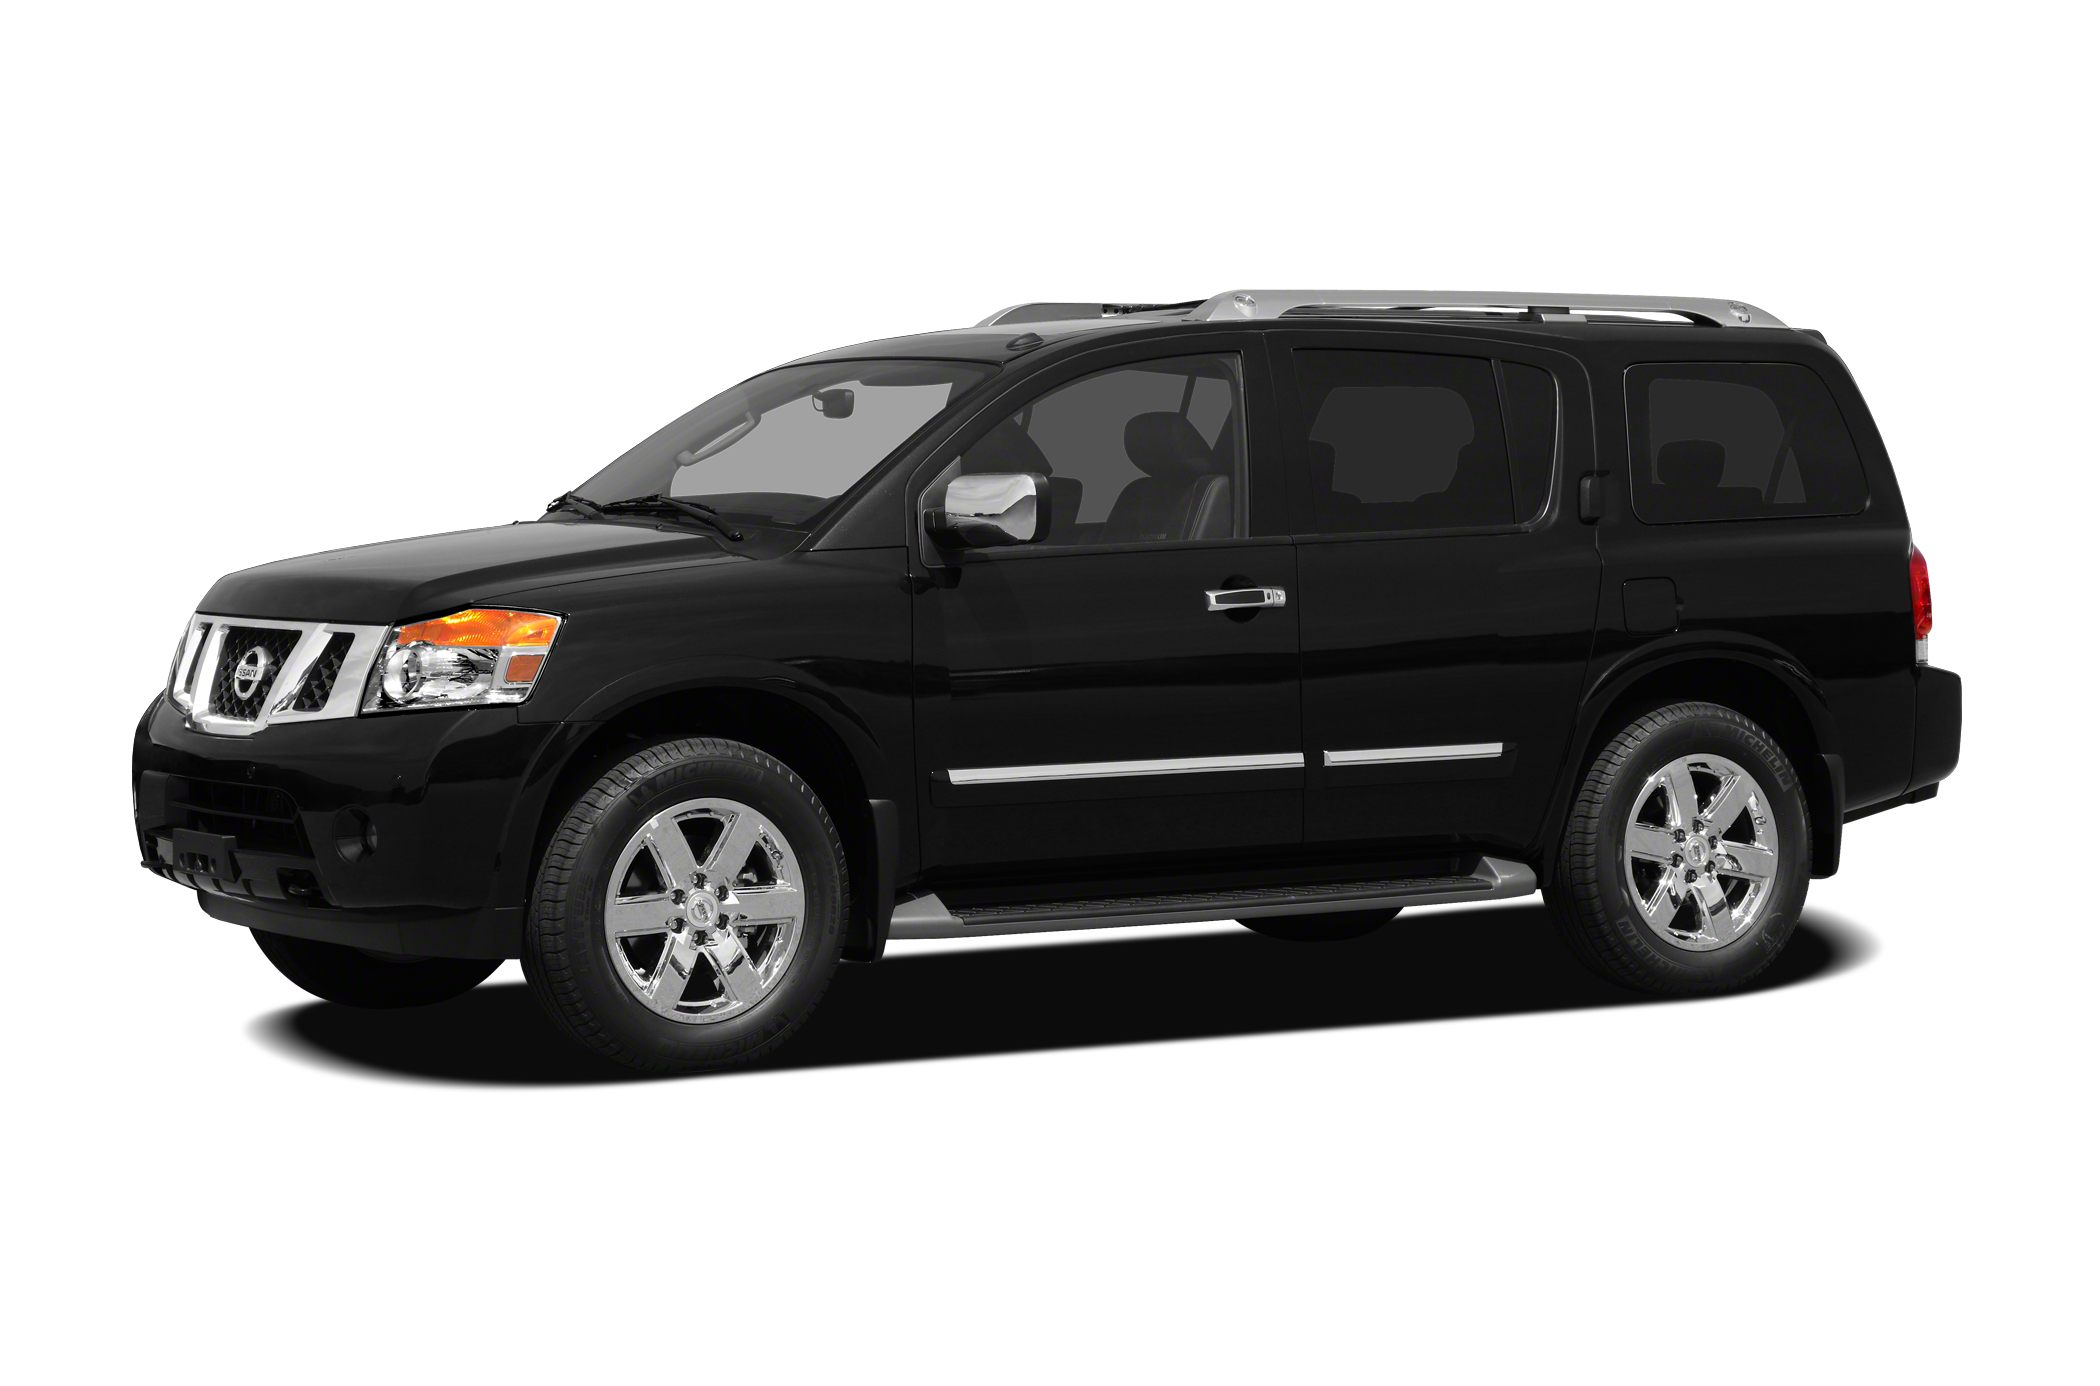 2012 Nissan Armada SV SUV for sale in Port Chester for $27,928 with 31,987 miles